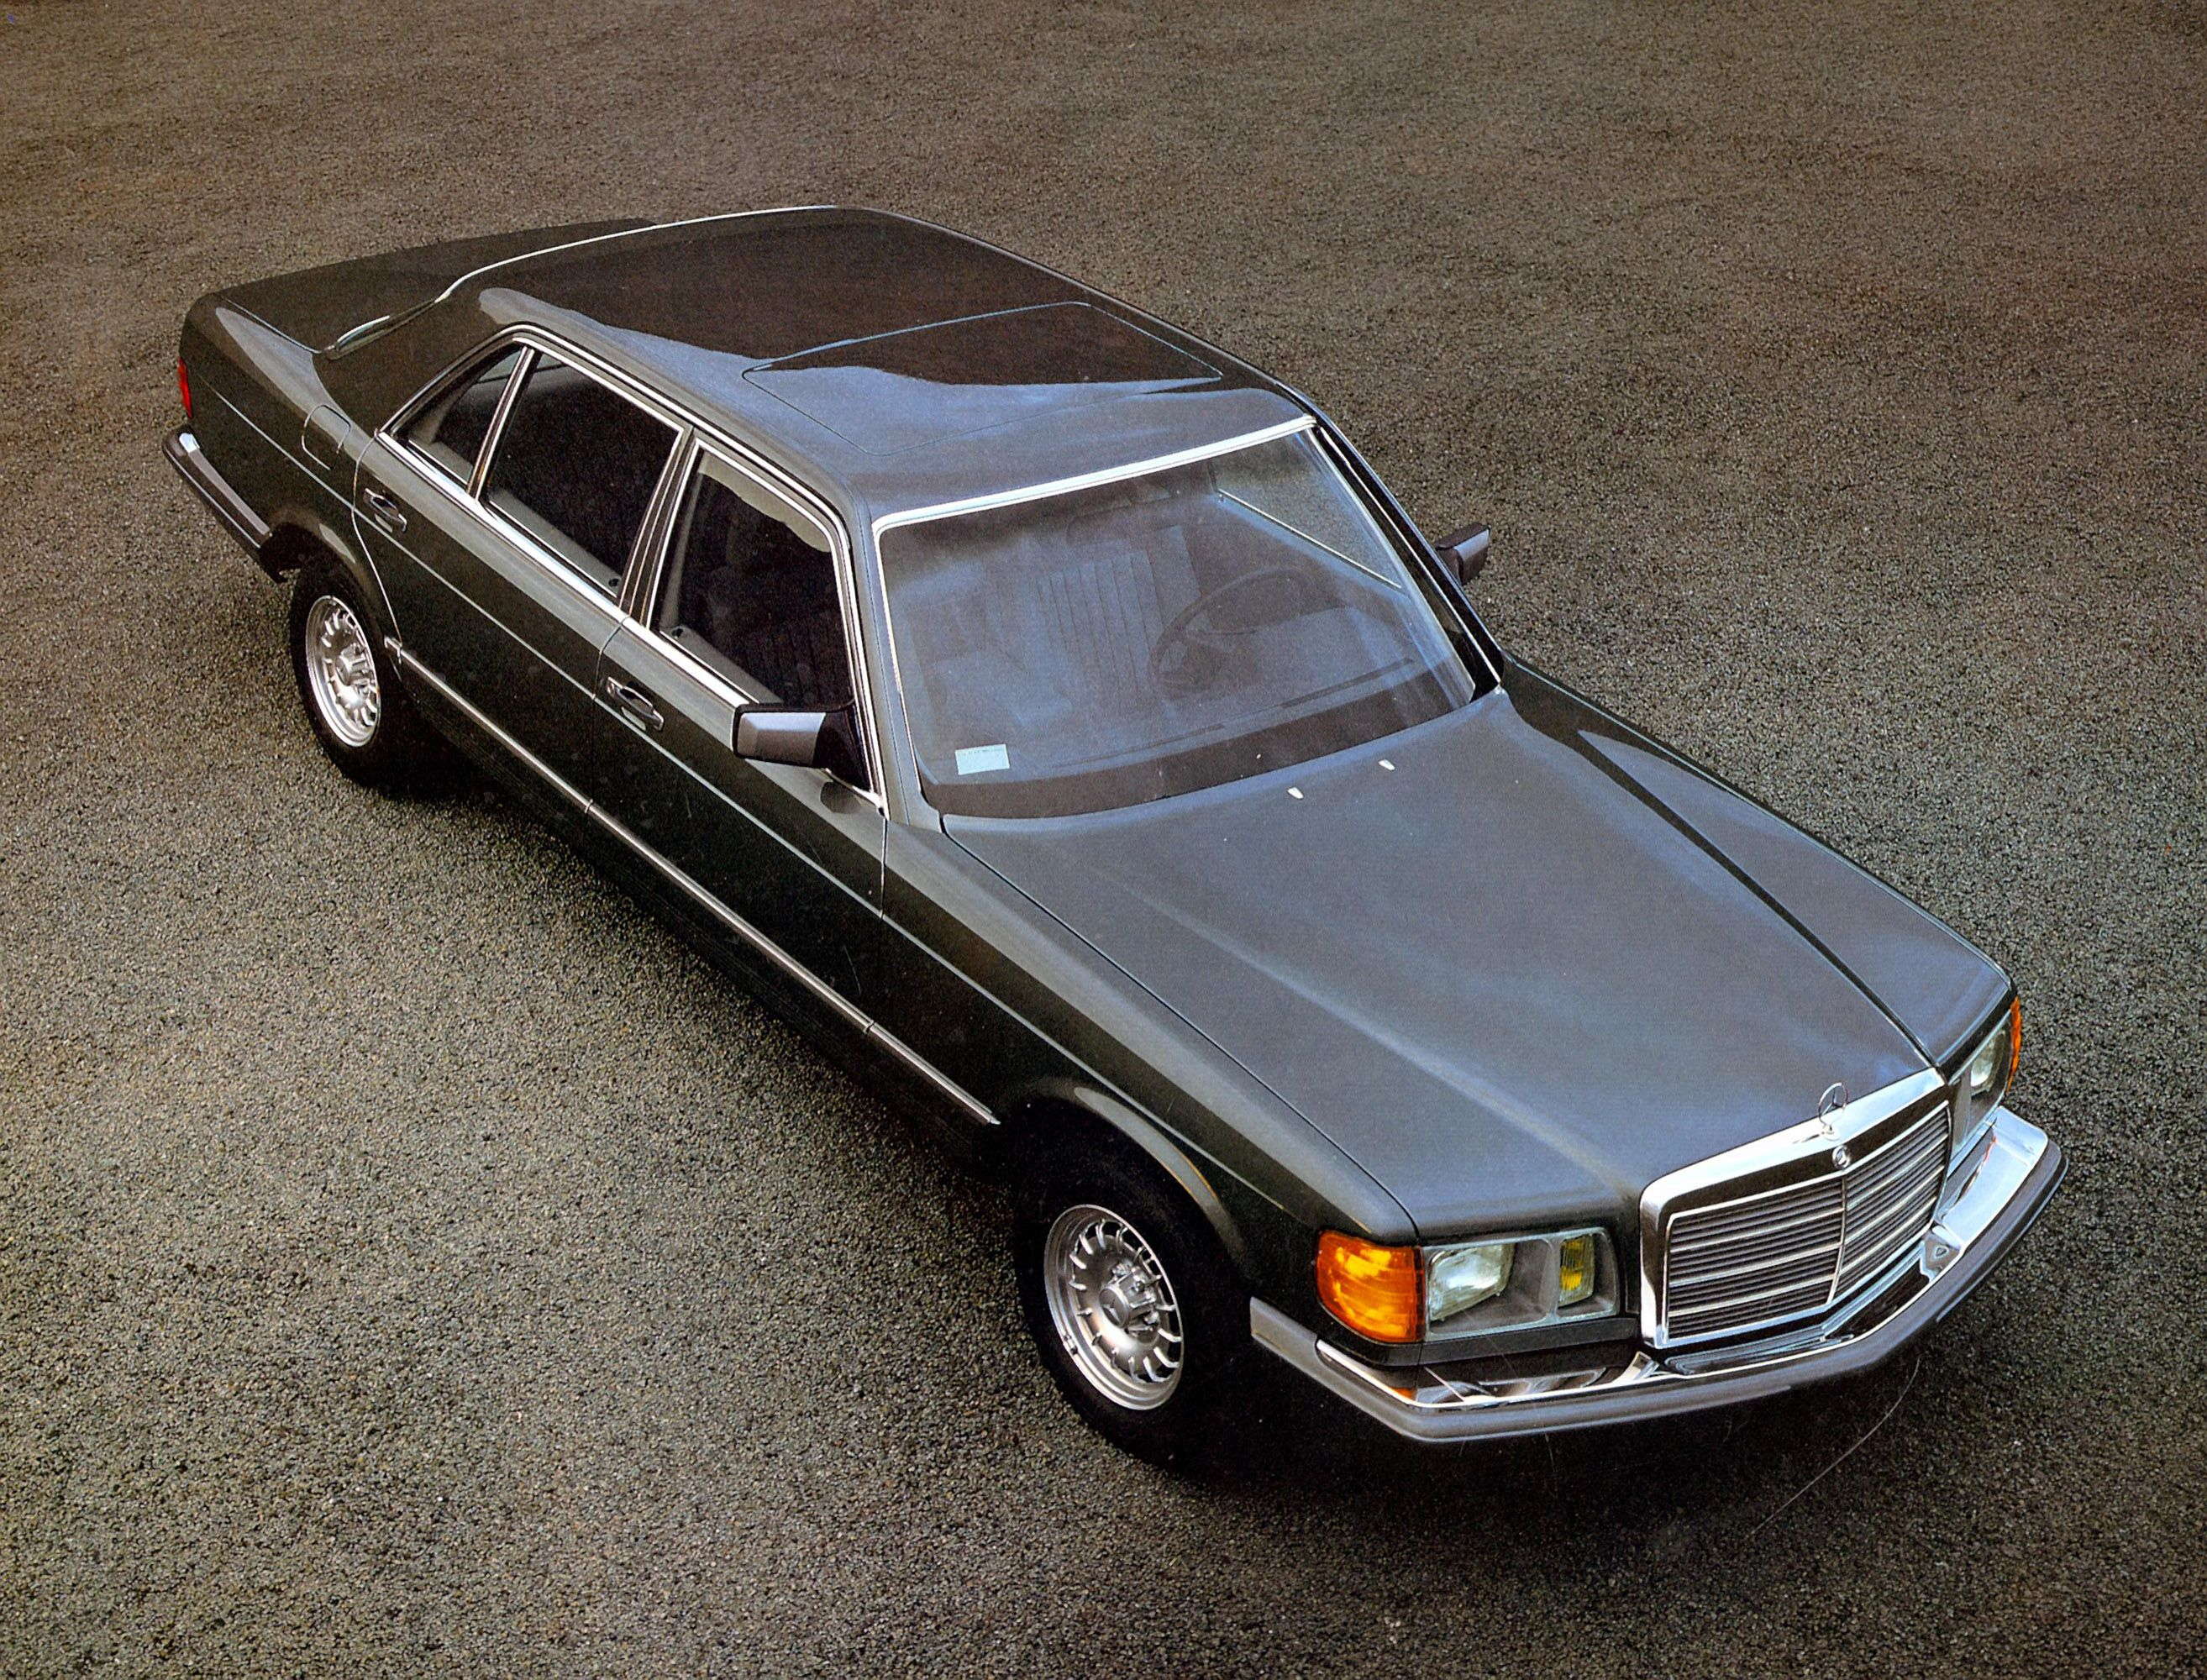 How many amg 6 0 4v w126 sec and sel cars were built amg side shot - 1979 Mercedes Benz S Class W126 04 Jpg 2 627